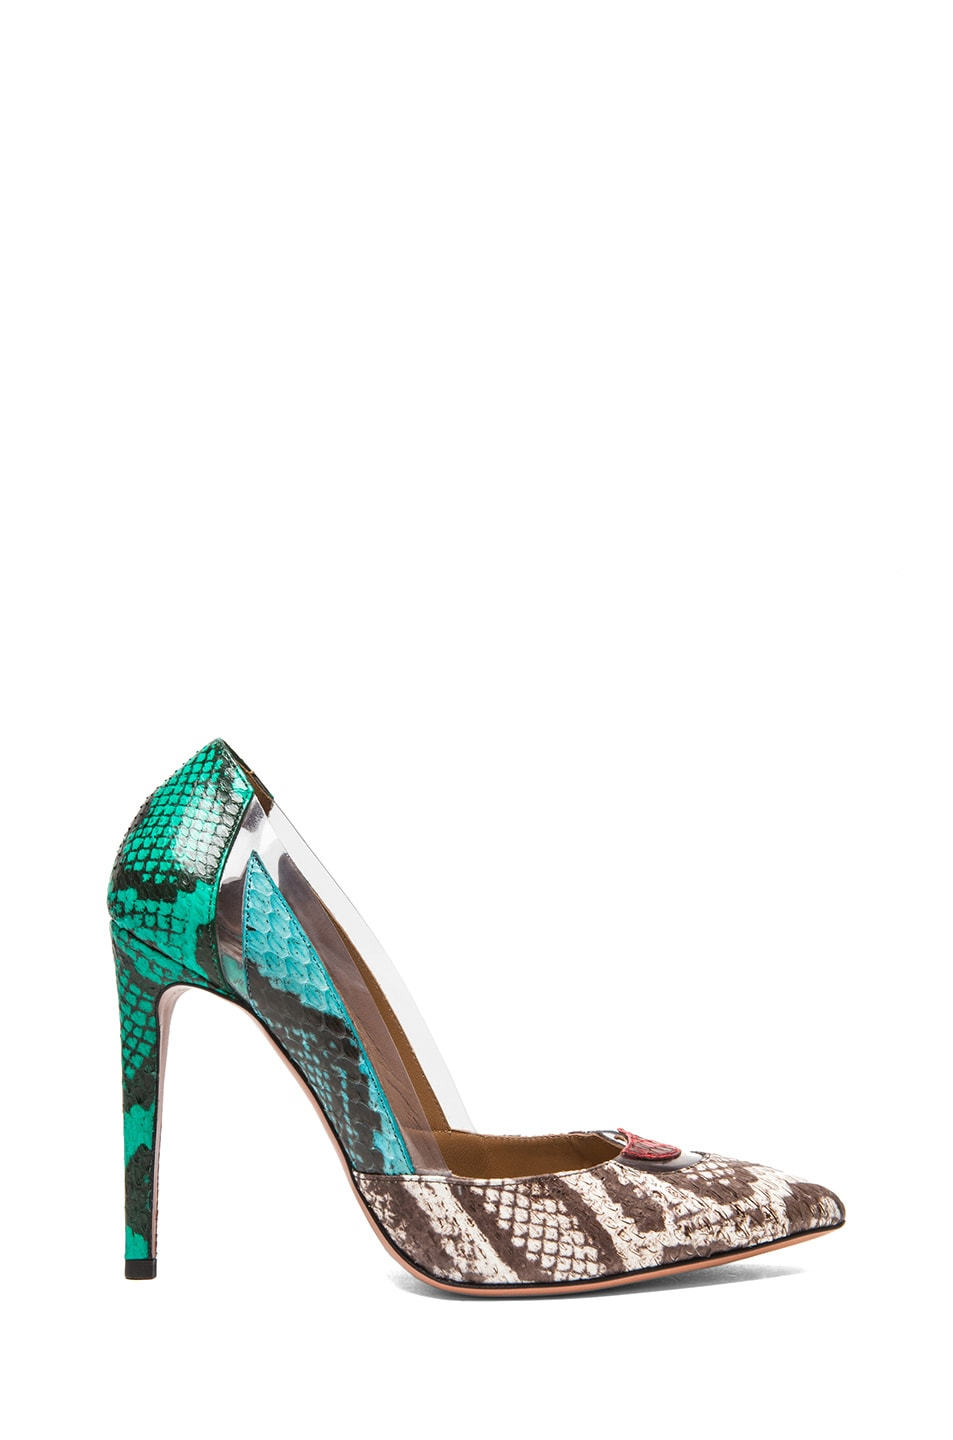 Image 1 of Aquazzura Positano Elaphe Snakeskin Heels in Multi